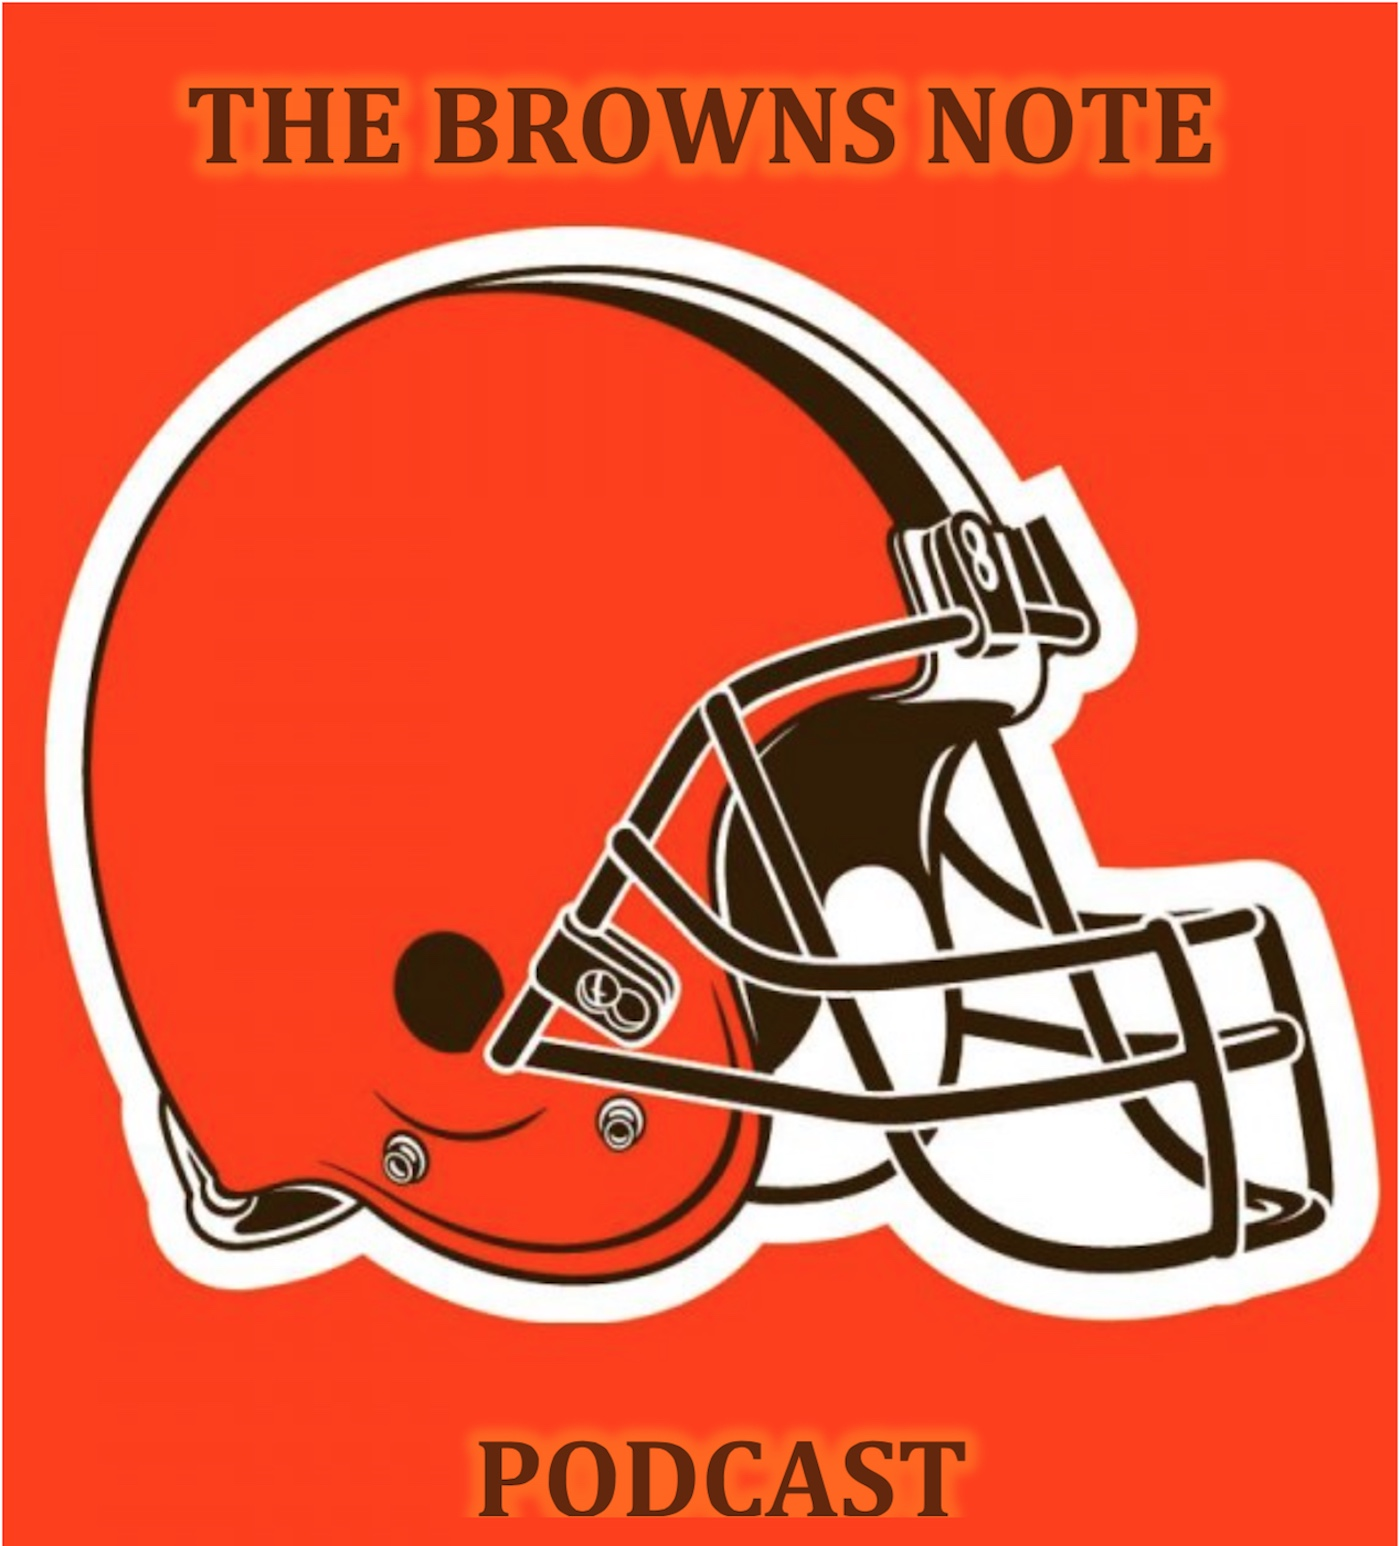 The BROWNS NOTE PODCAST